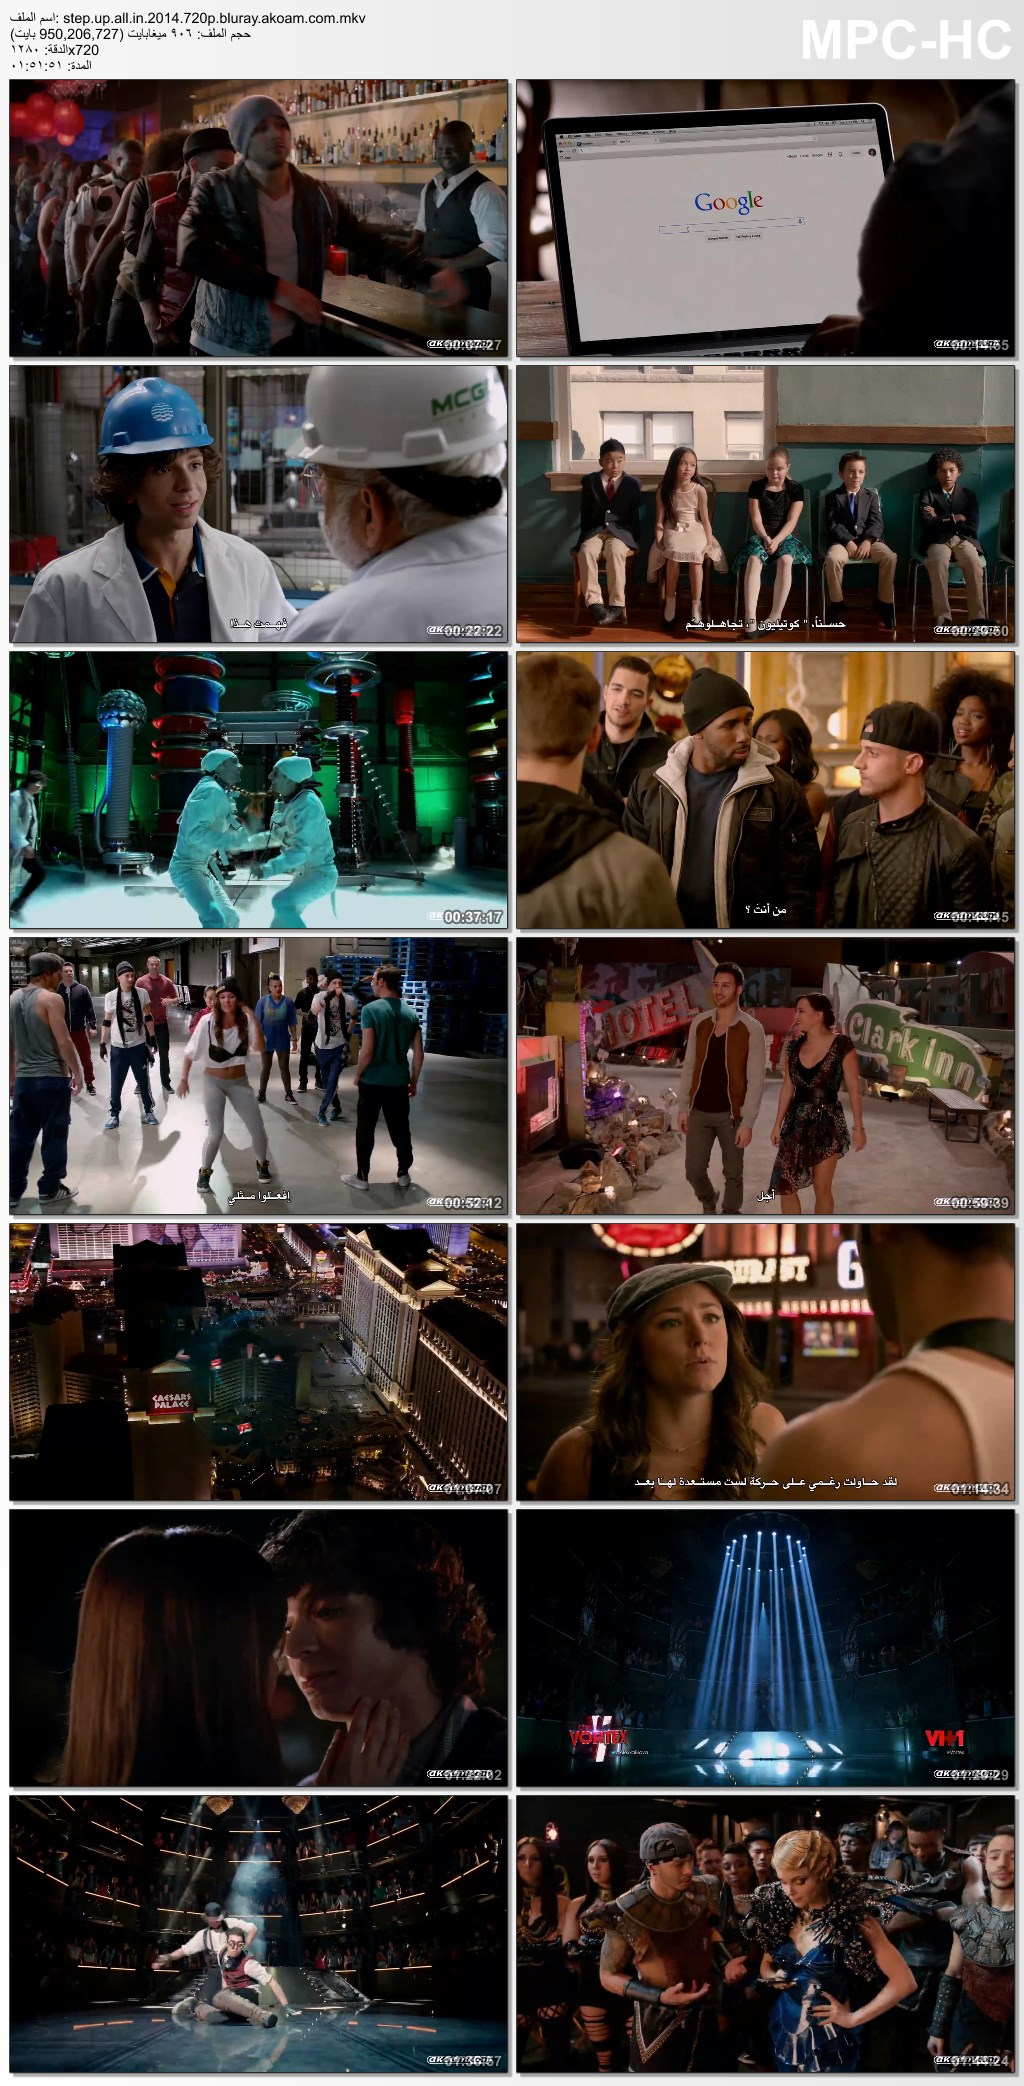 الرومانسية,الدراما,الموسيقي,Step Up,Step Up 2006,Step Up 2: The Streets,Step Up 3D,Step Up Revolution,Step Up All In